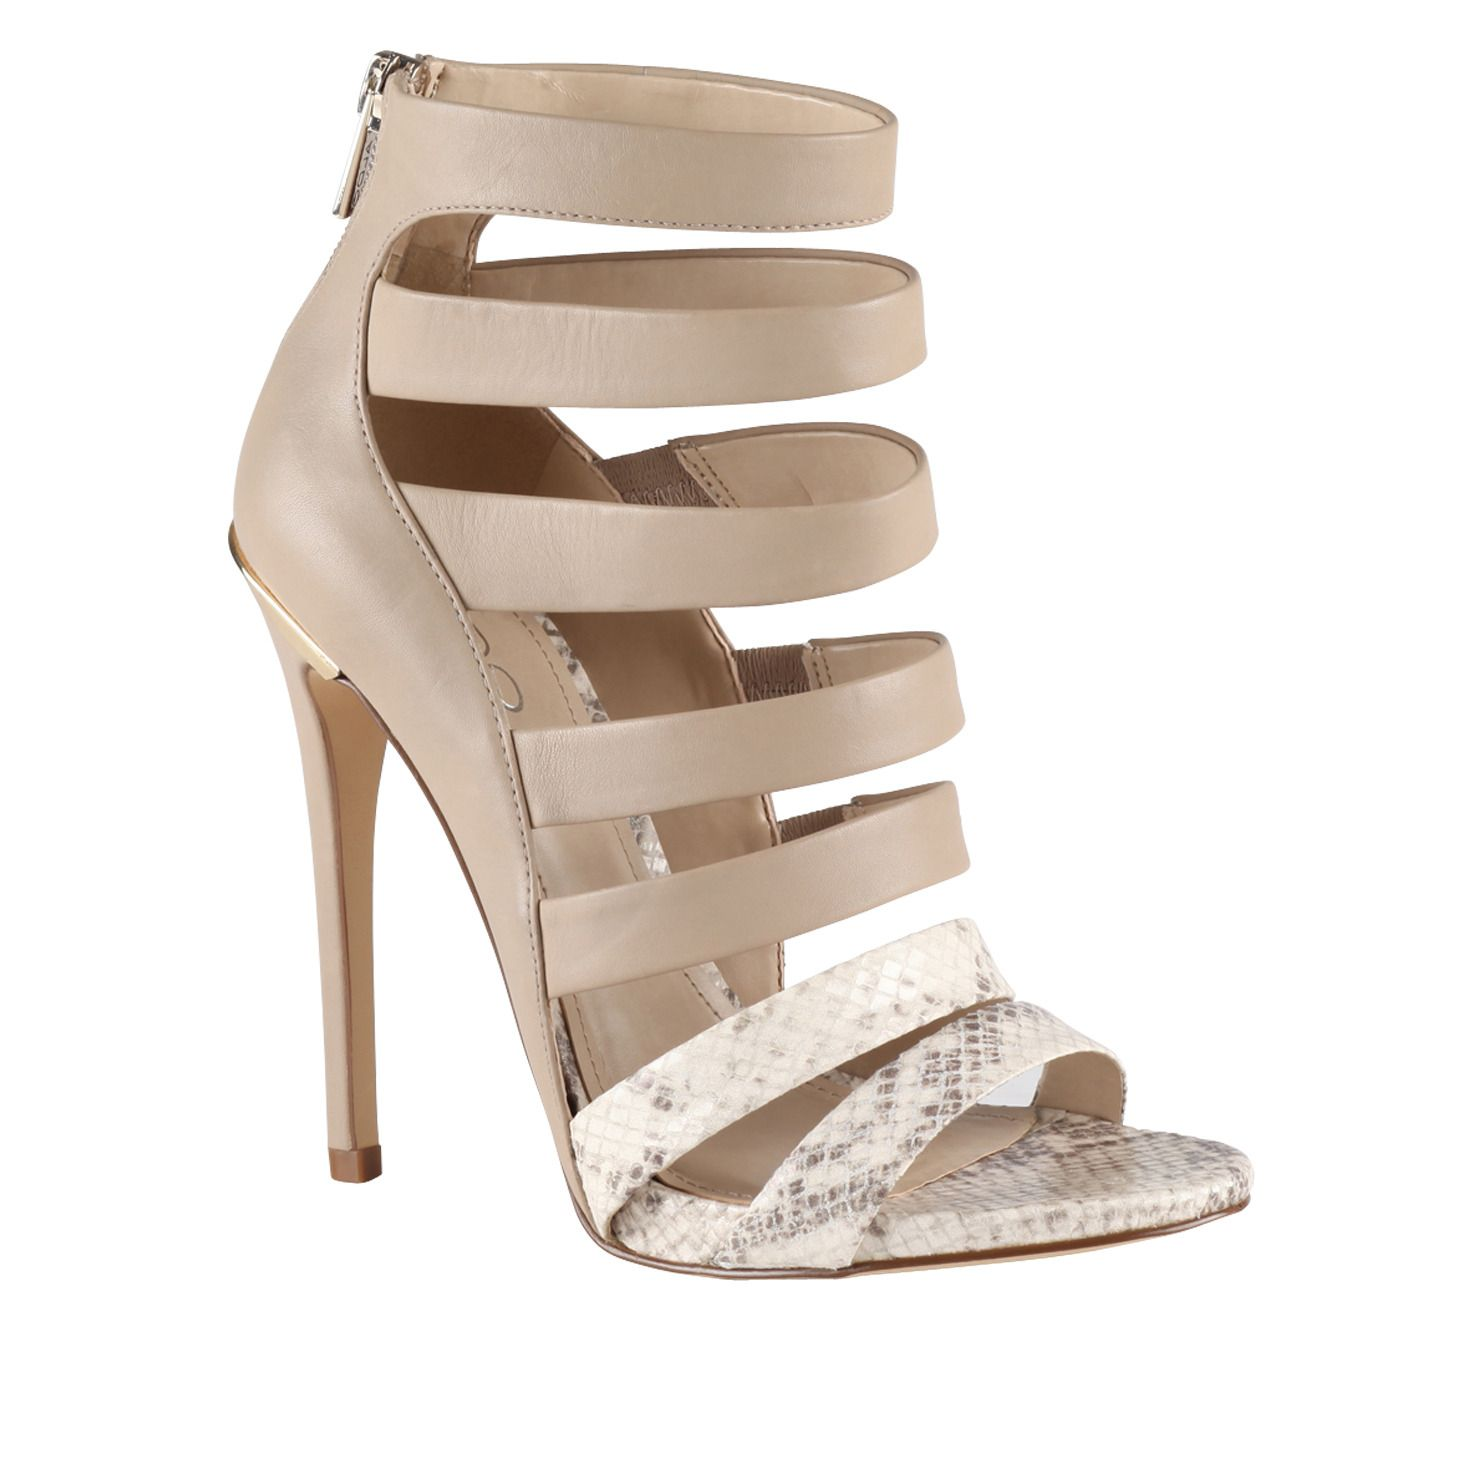 SOSHANNAH - women's high heels sandals for sale at ALDO Shoes.